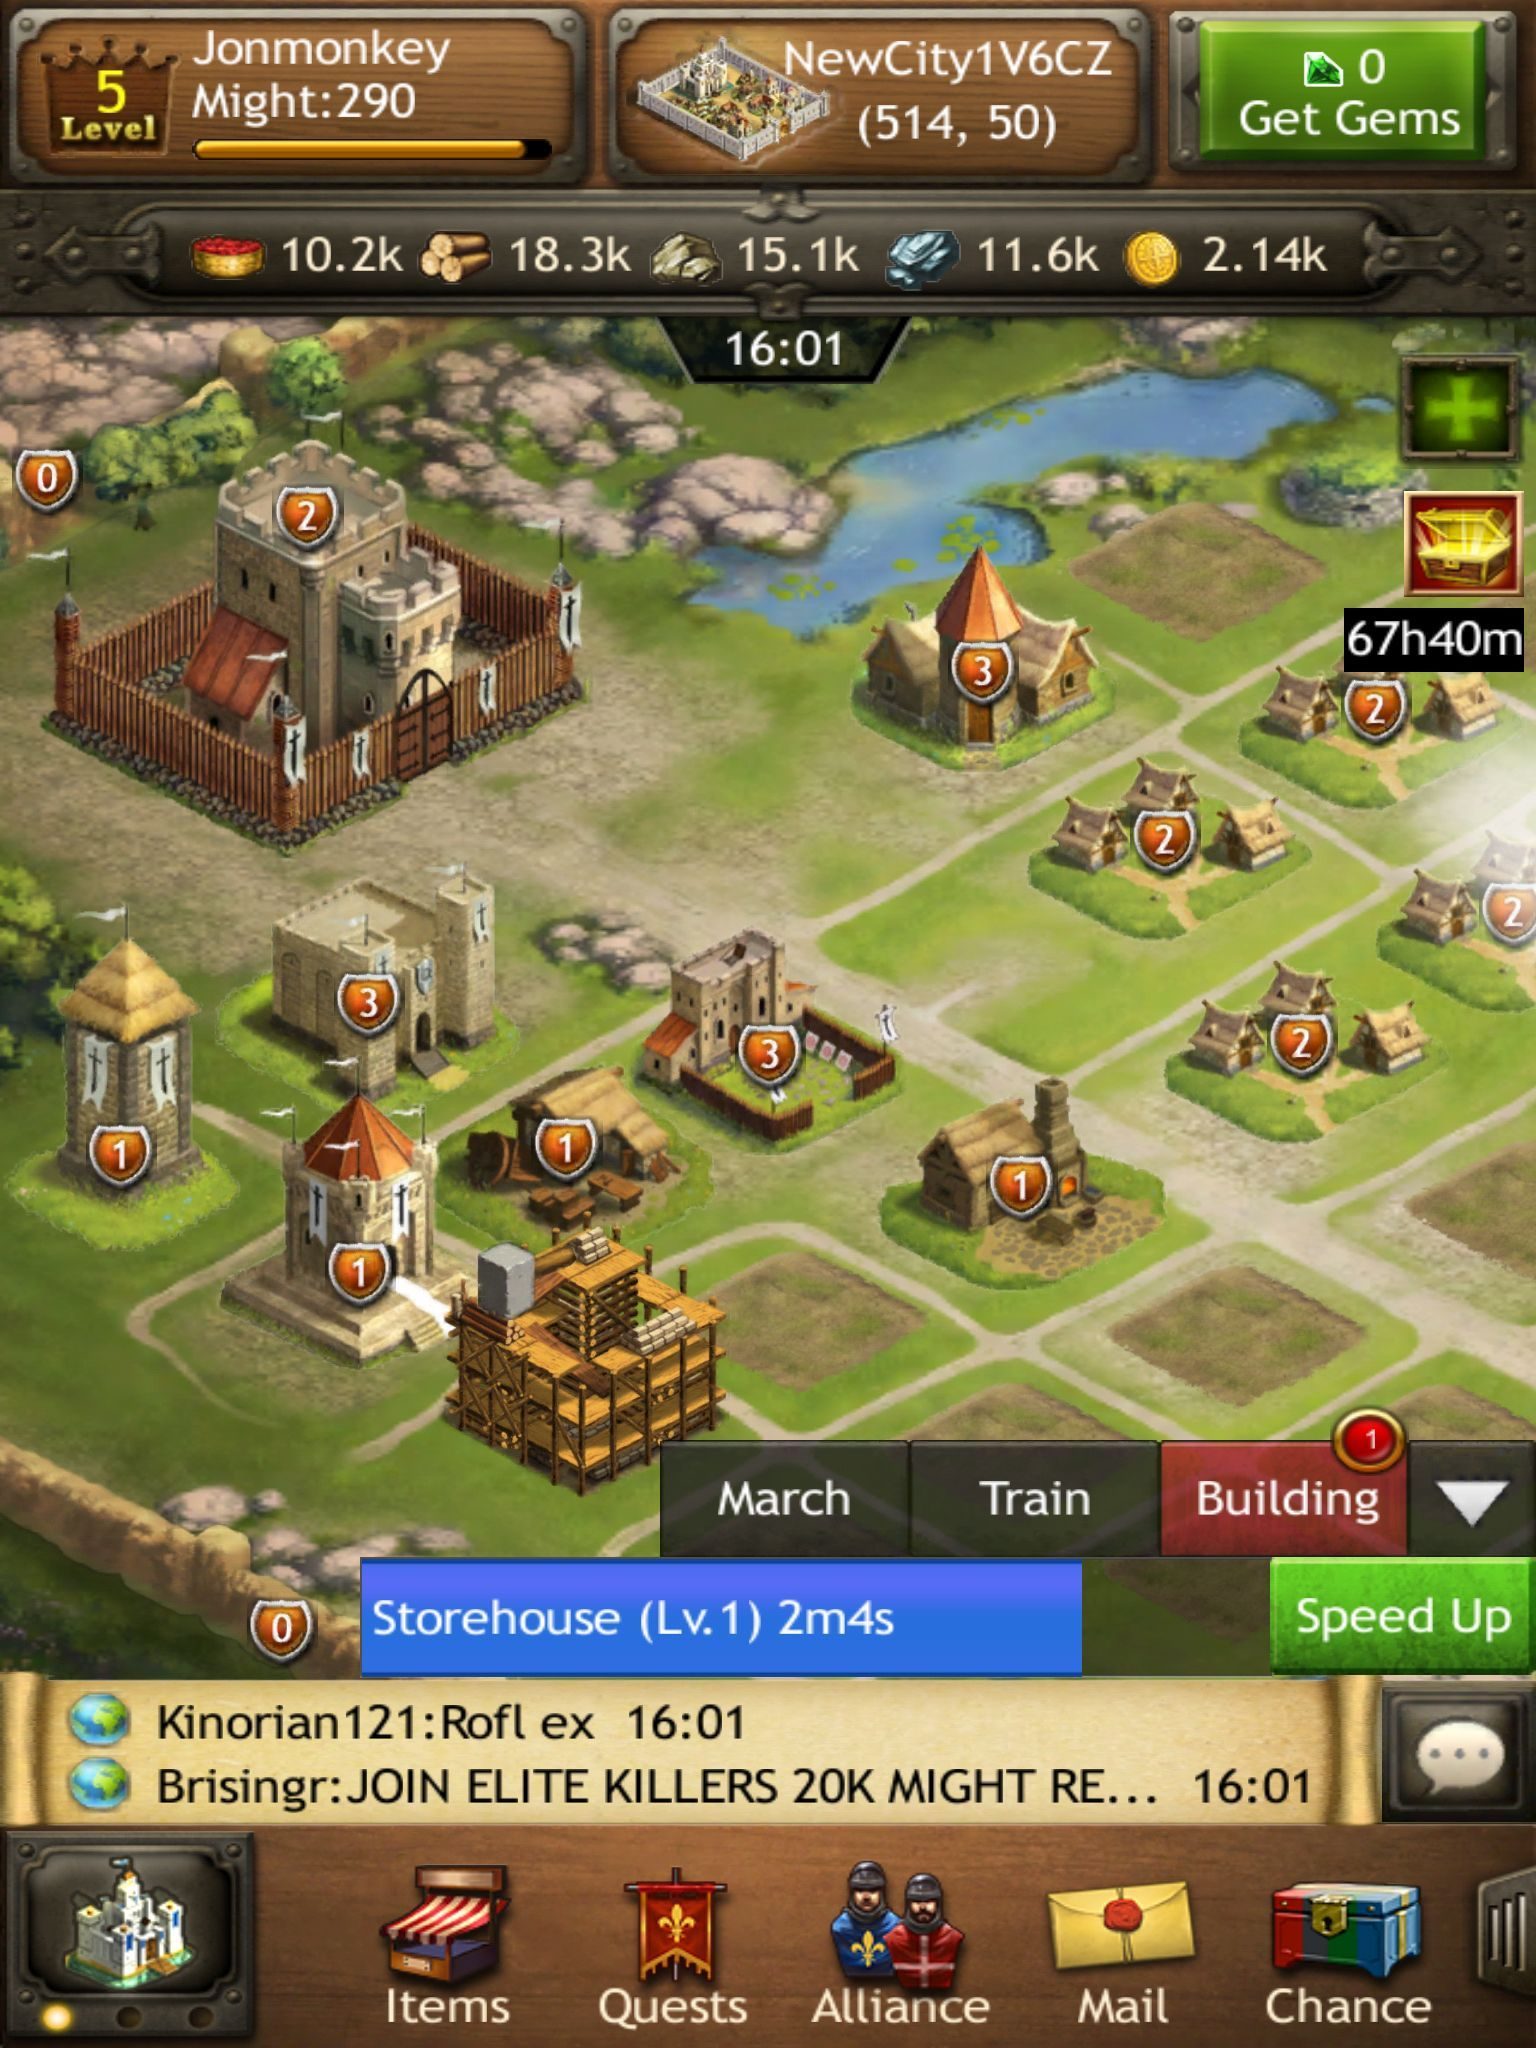 The now familiar portrait style and isometric city view can be traced back to Kingdoms of Camelot on mobile, released in 2011. 3 whole years before Game of War, and a game that GoW borrowed very heavily from.